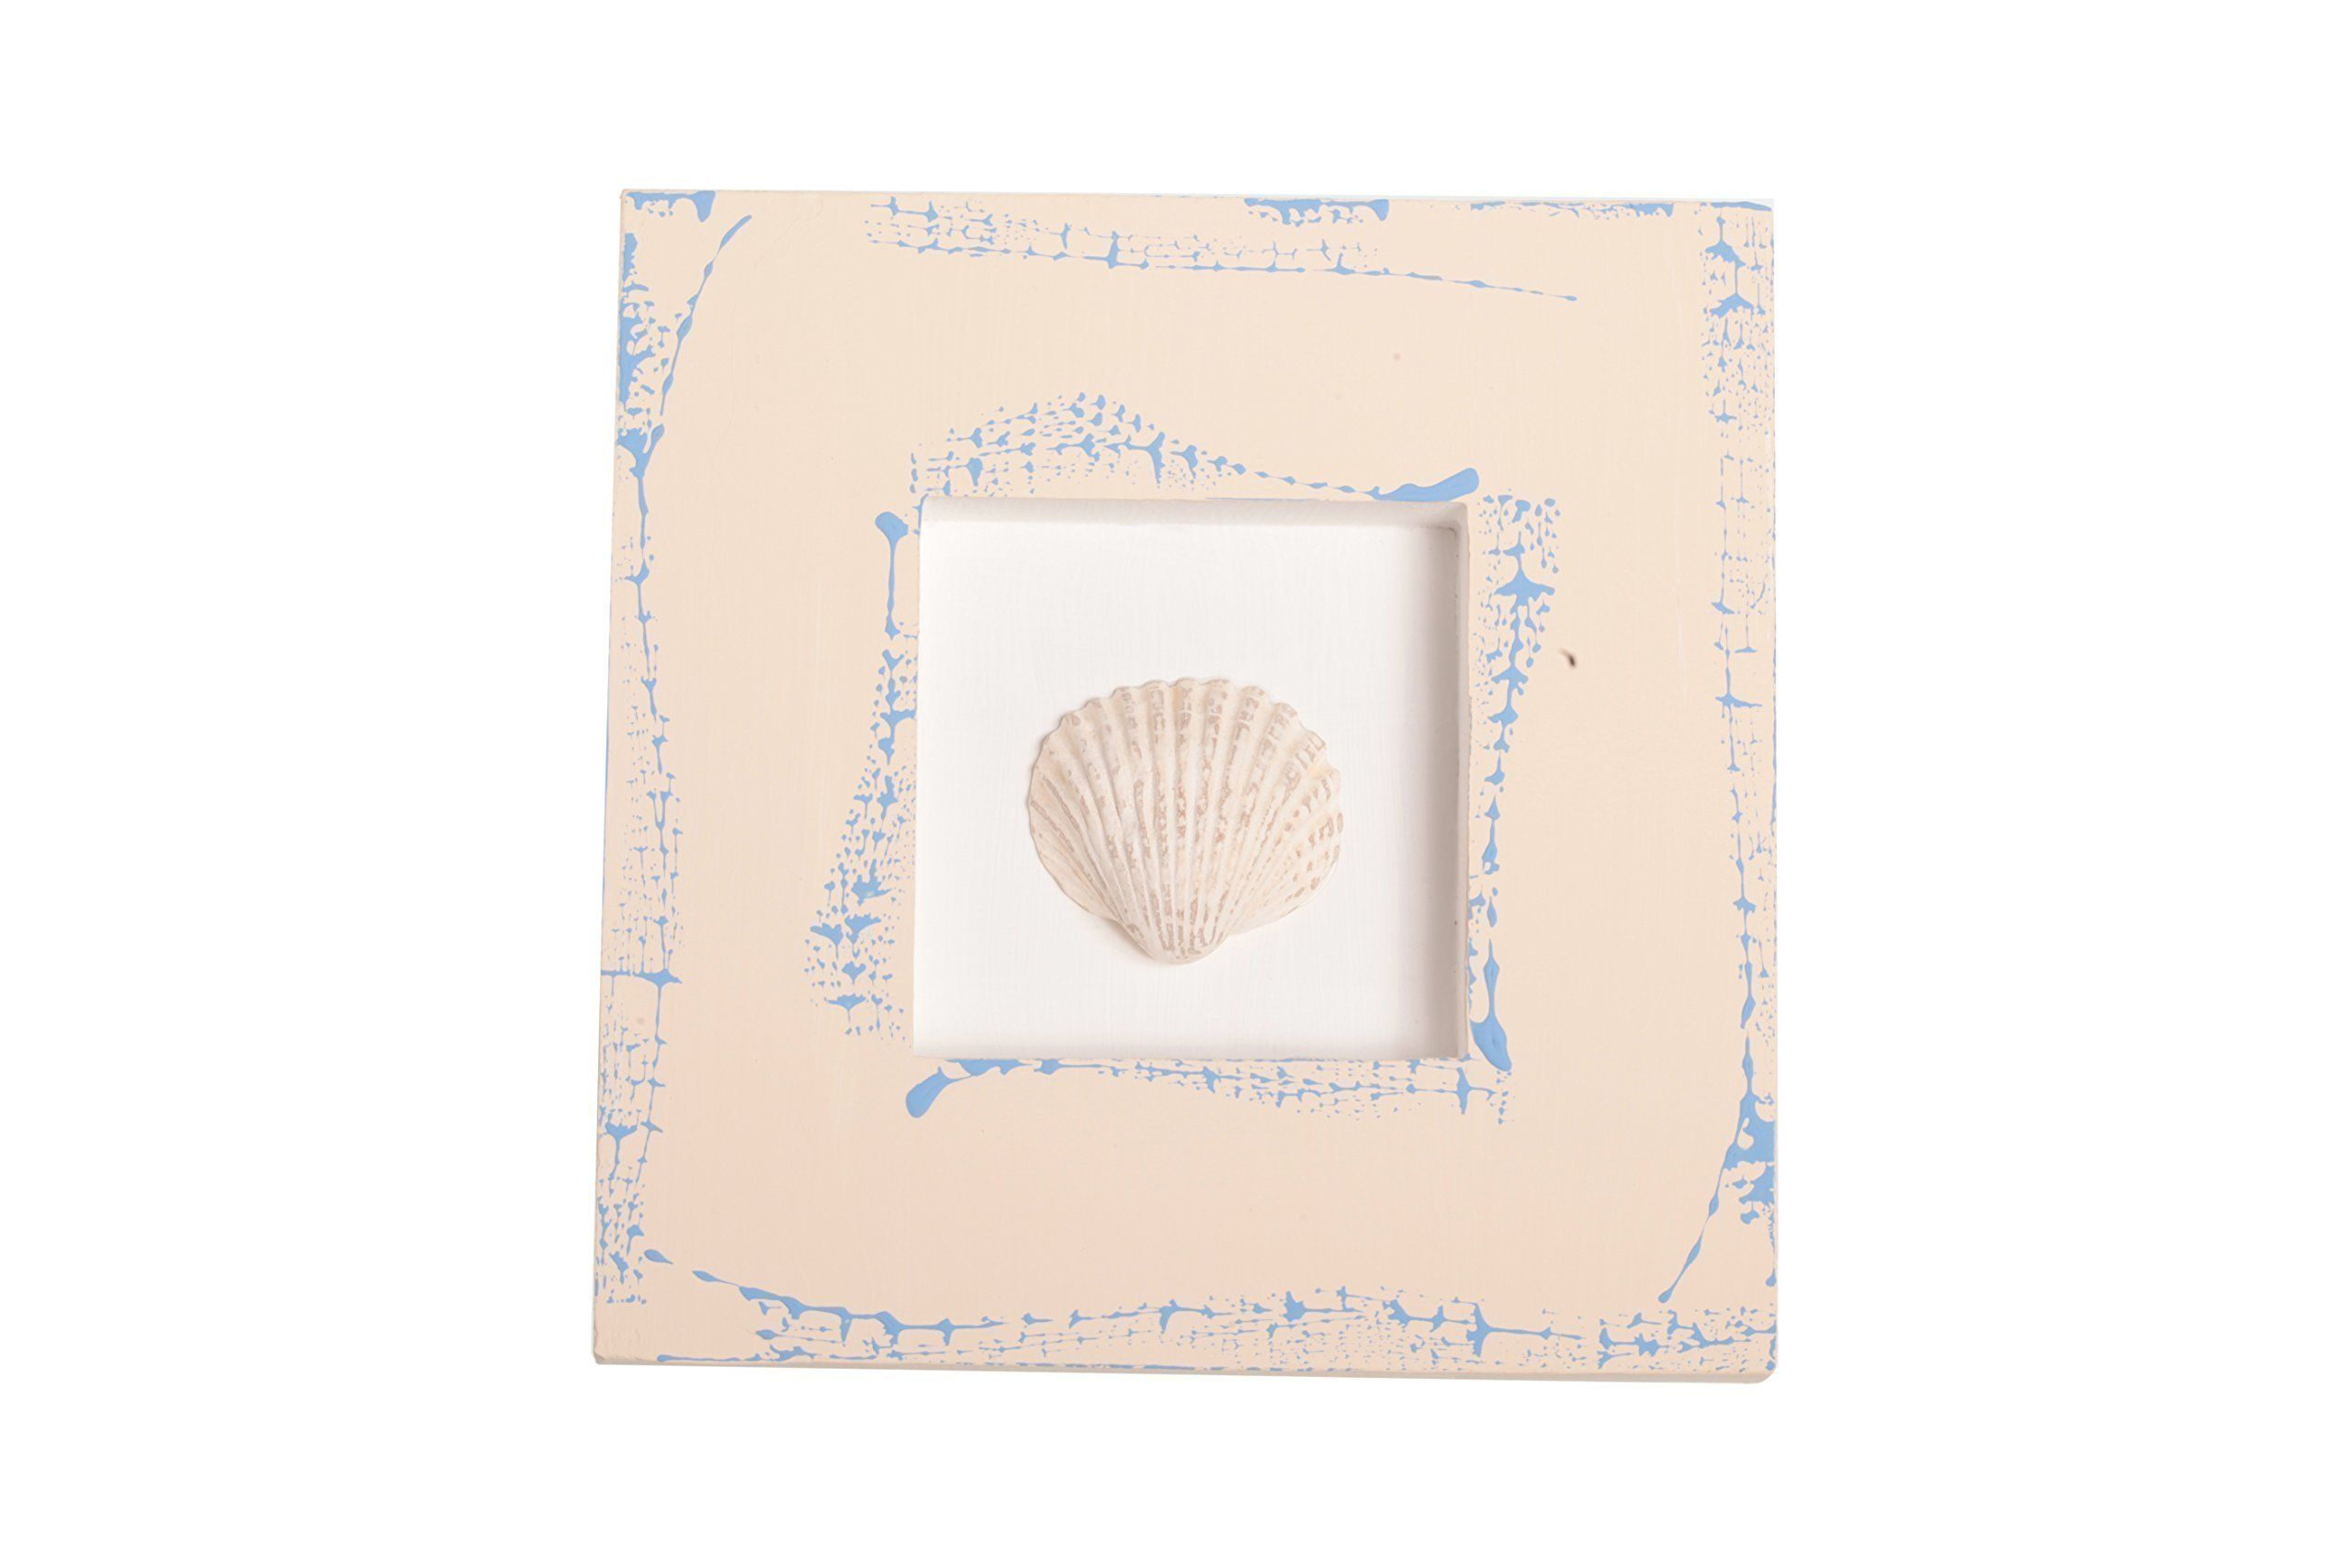 Sea Shell Wooden Artwork Wall Mounted Home Mediterranean Decor. SALE Small art composition from Mediterranean collection - Seashell. Wood frame with gypsum figure at center. Hand-painted makes the product unique and inimitable. Size: 6.3x6.3 inches (16x16 cm).